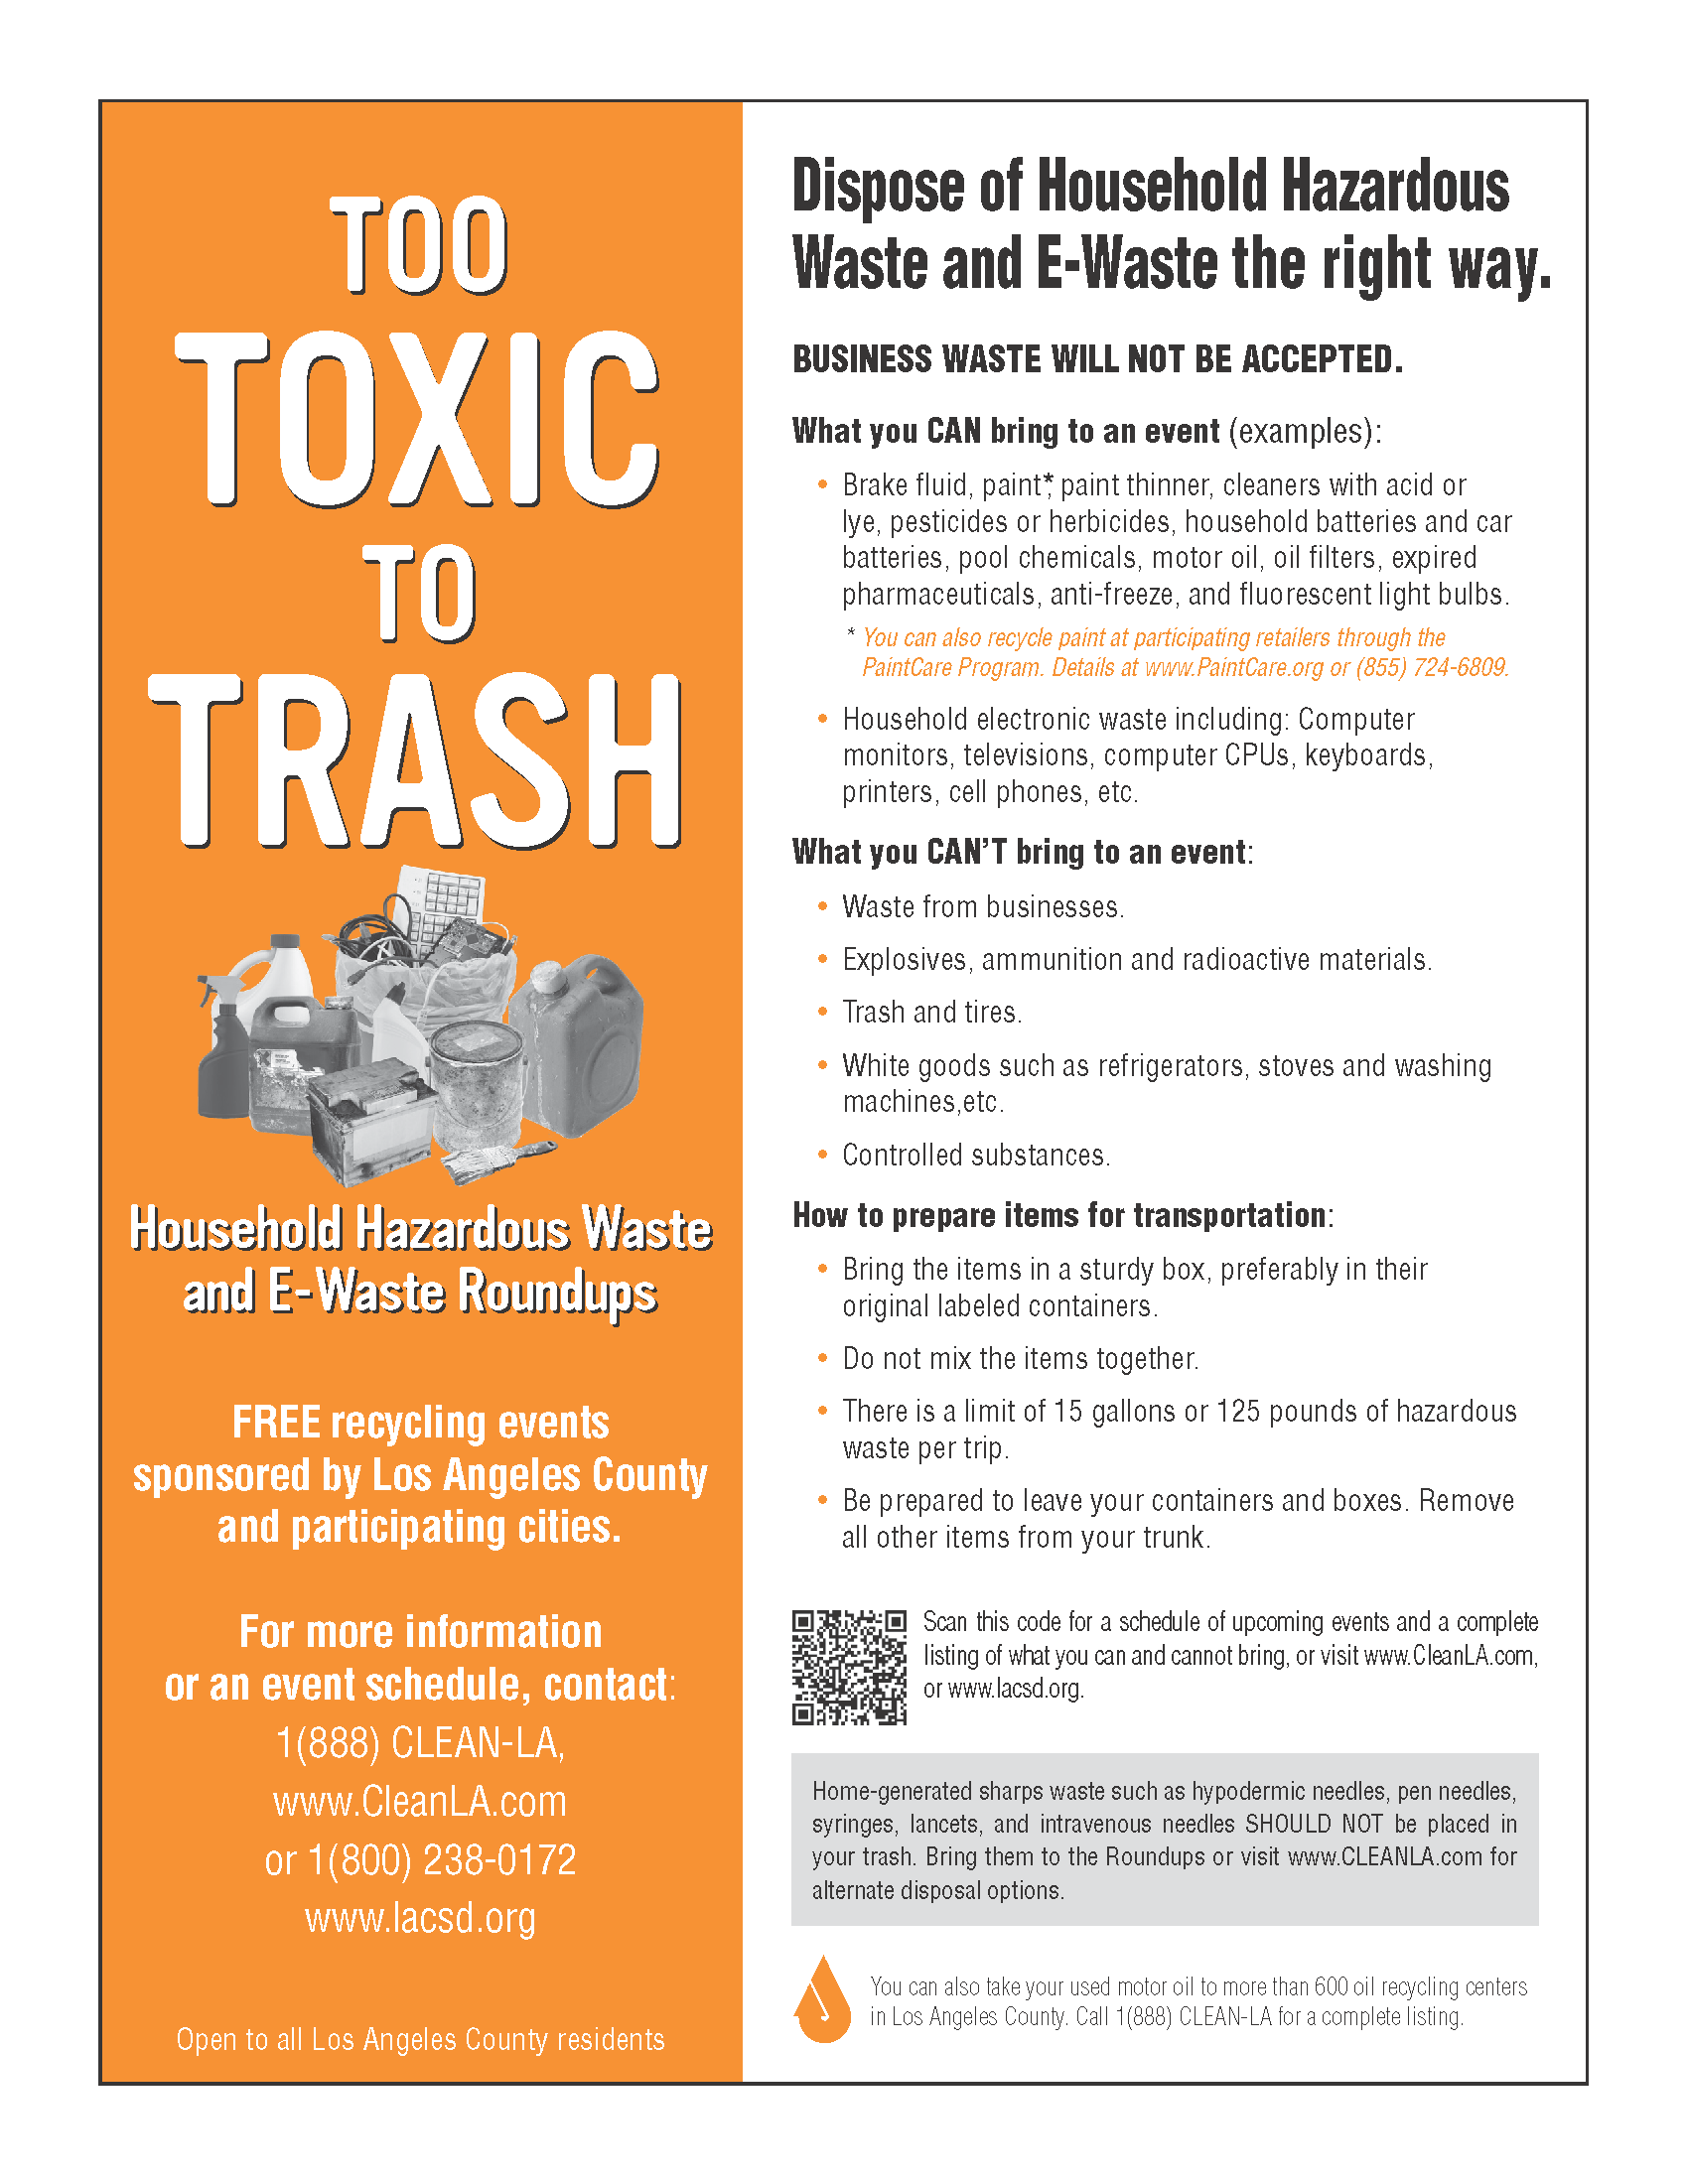 Hazardous Waste and E-Waste Events Flyer (see www.CleanLA.com)